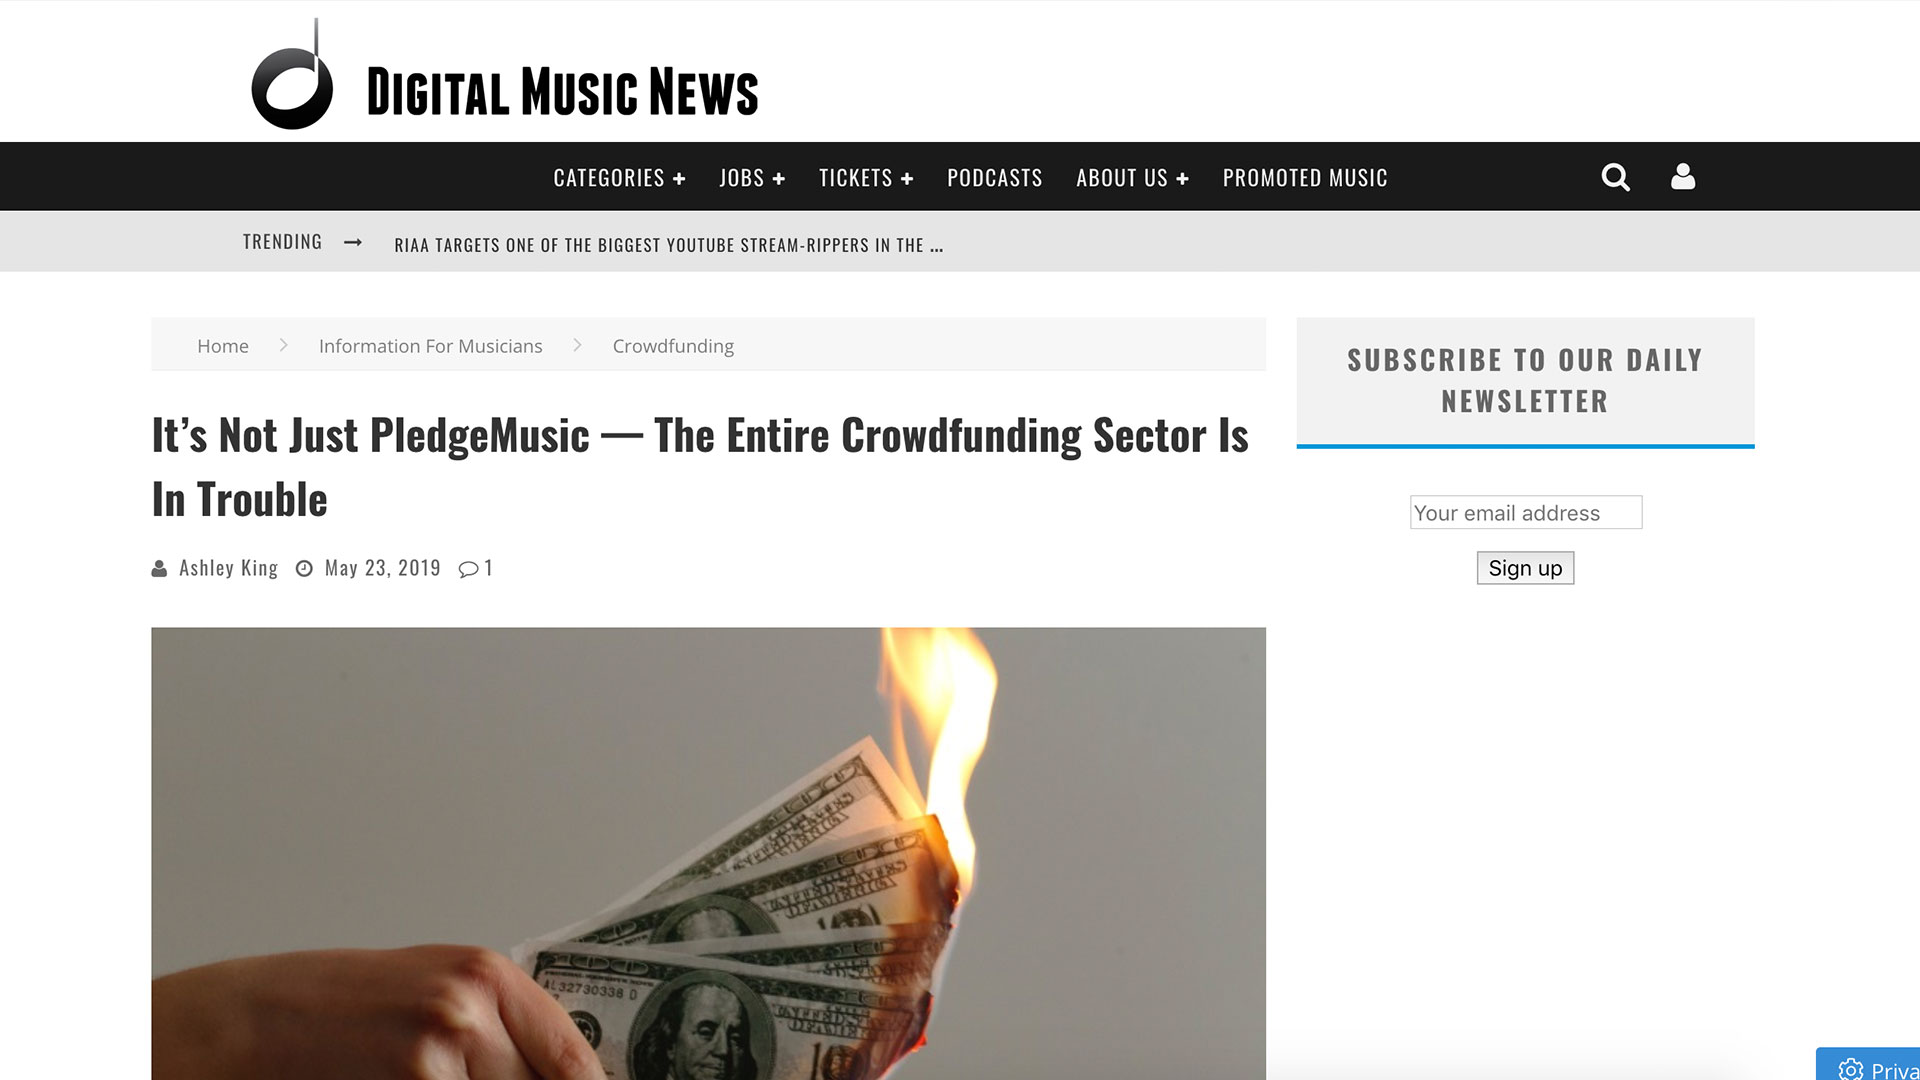 Fairness Rocks News It's Not Just PledgeMusic — The Entire Crowdfunding Sector Is In Trouble